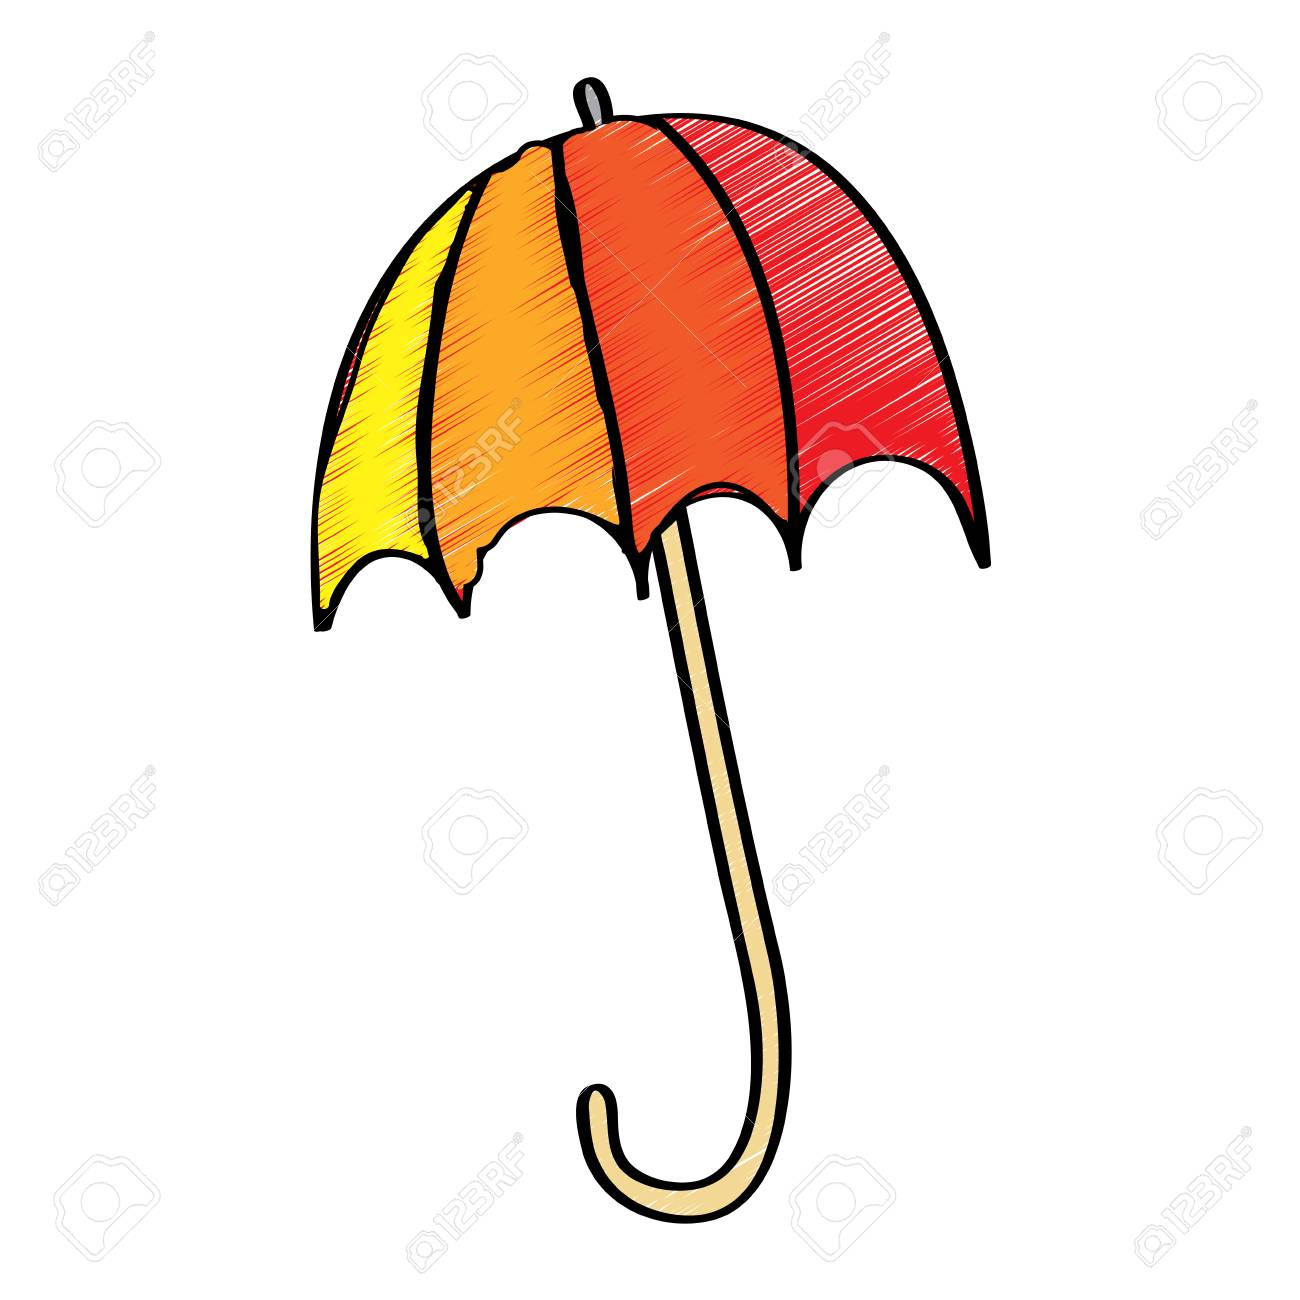 Colored Open Umbrella Protection Climate Season Vector Illustration Royalty Free Cliparts Vectors And Stock Illustration Image 96070769